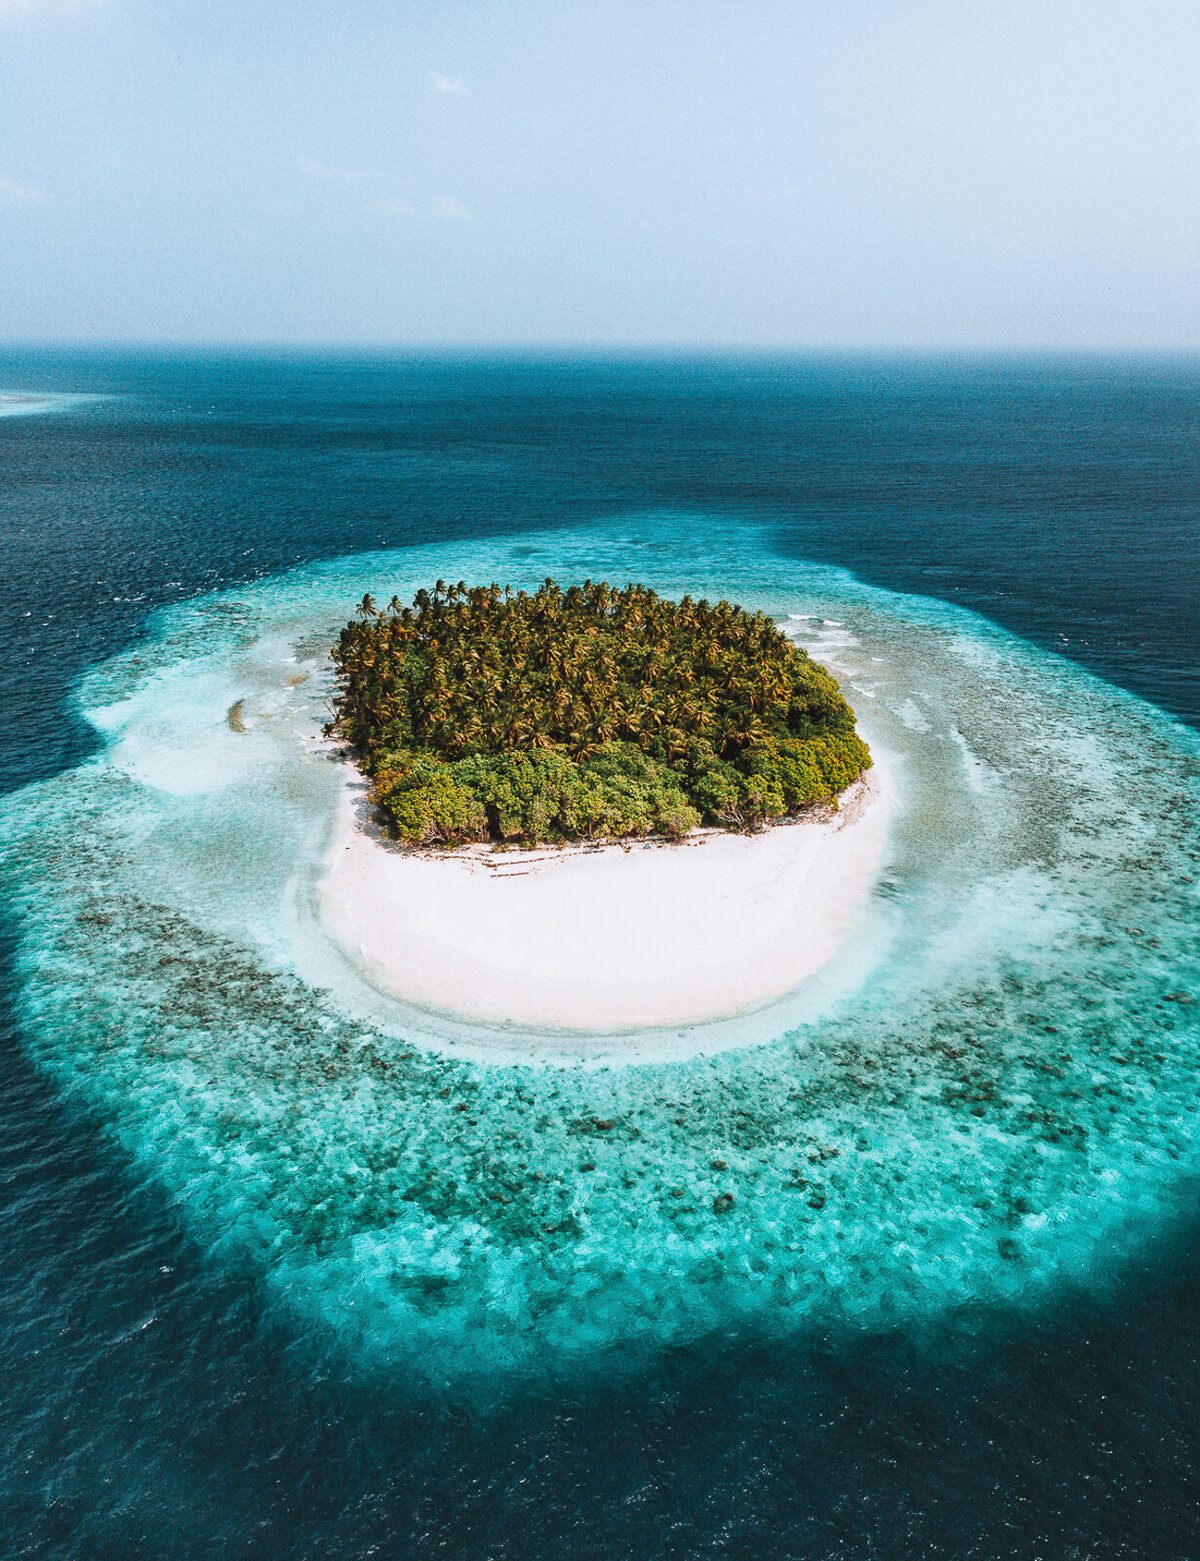 Uninhabited, Maldives (re-edit)